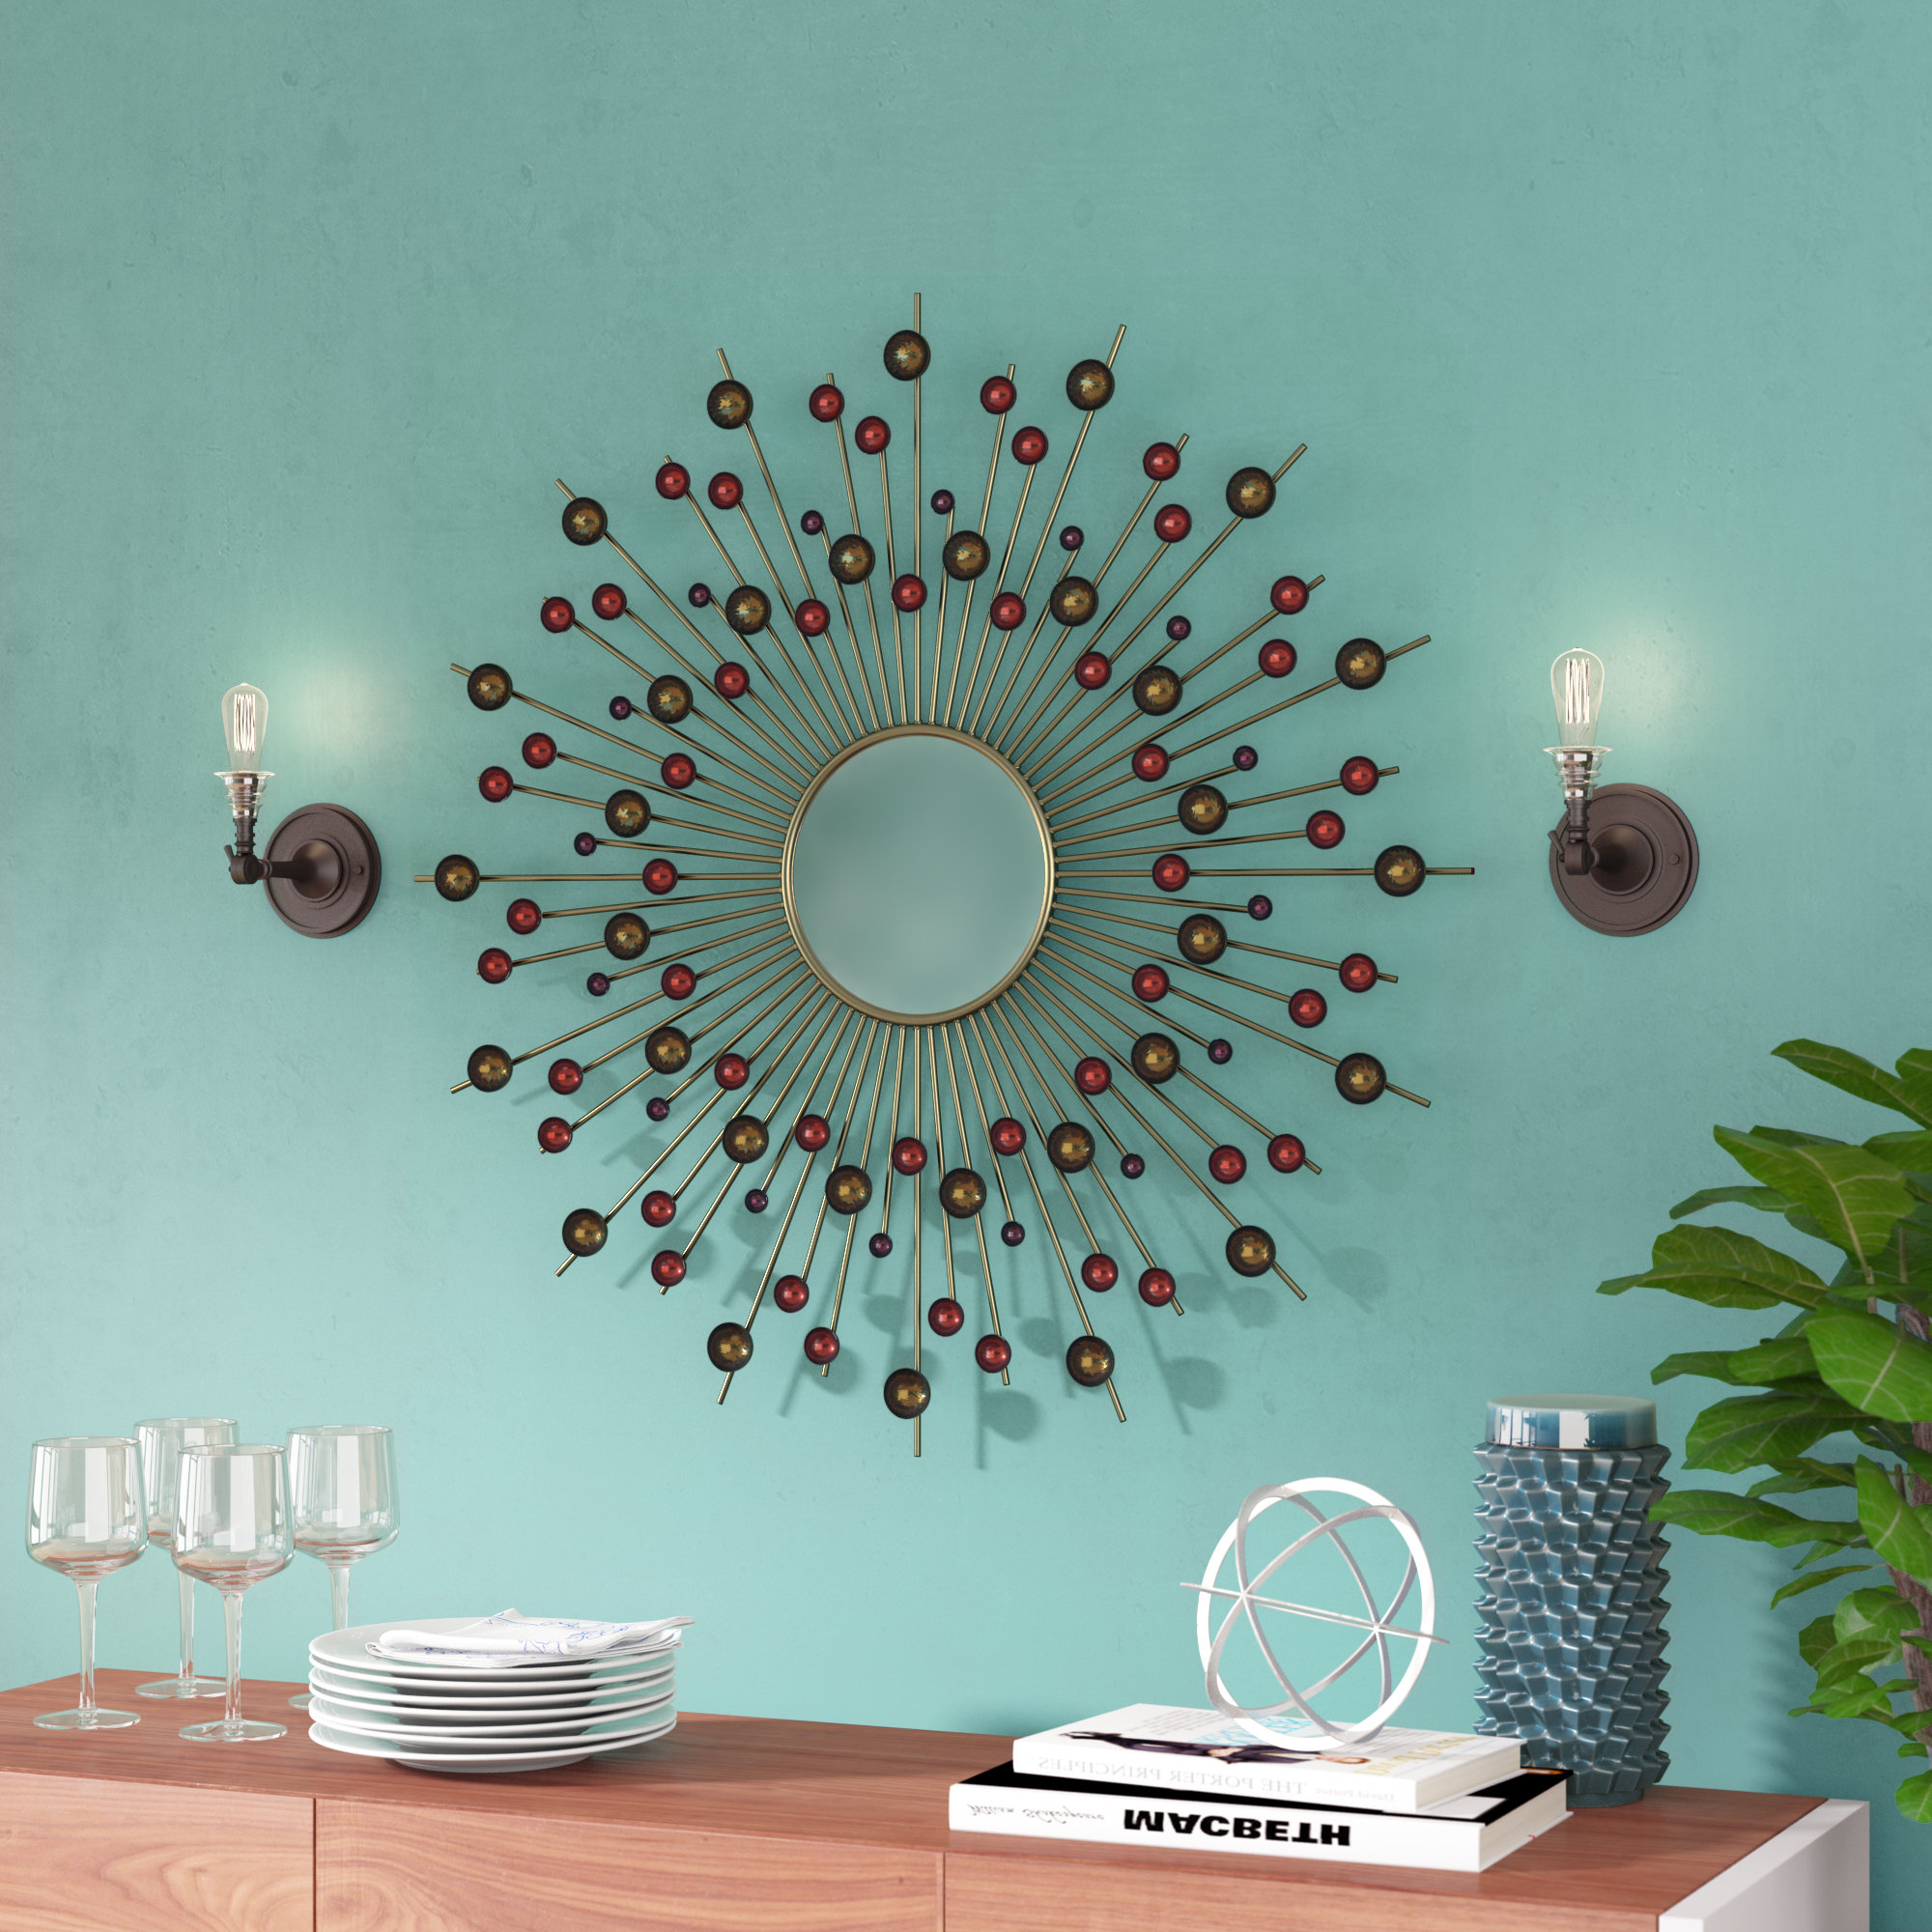 Popular Carstens Sunburst Leaves Wall Mirrors Regarding Accent Sunburst Mirrors Youll Love Wayfair Look At This (View 11 of 20)